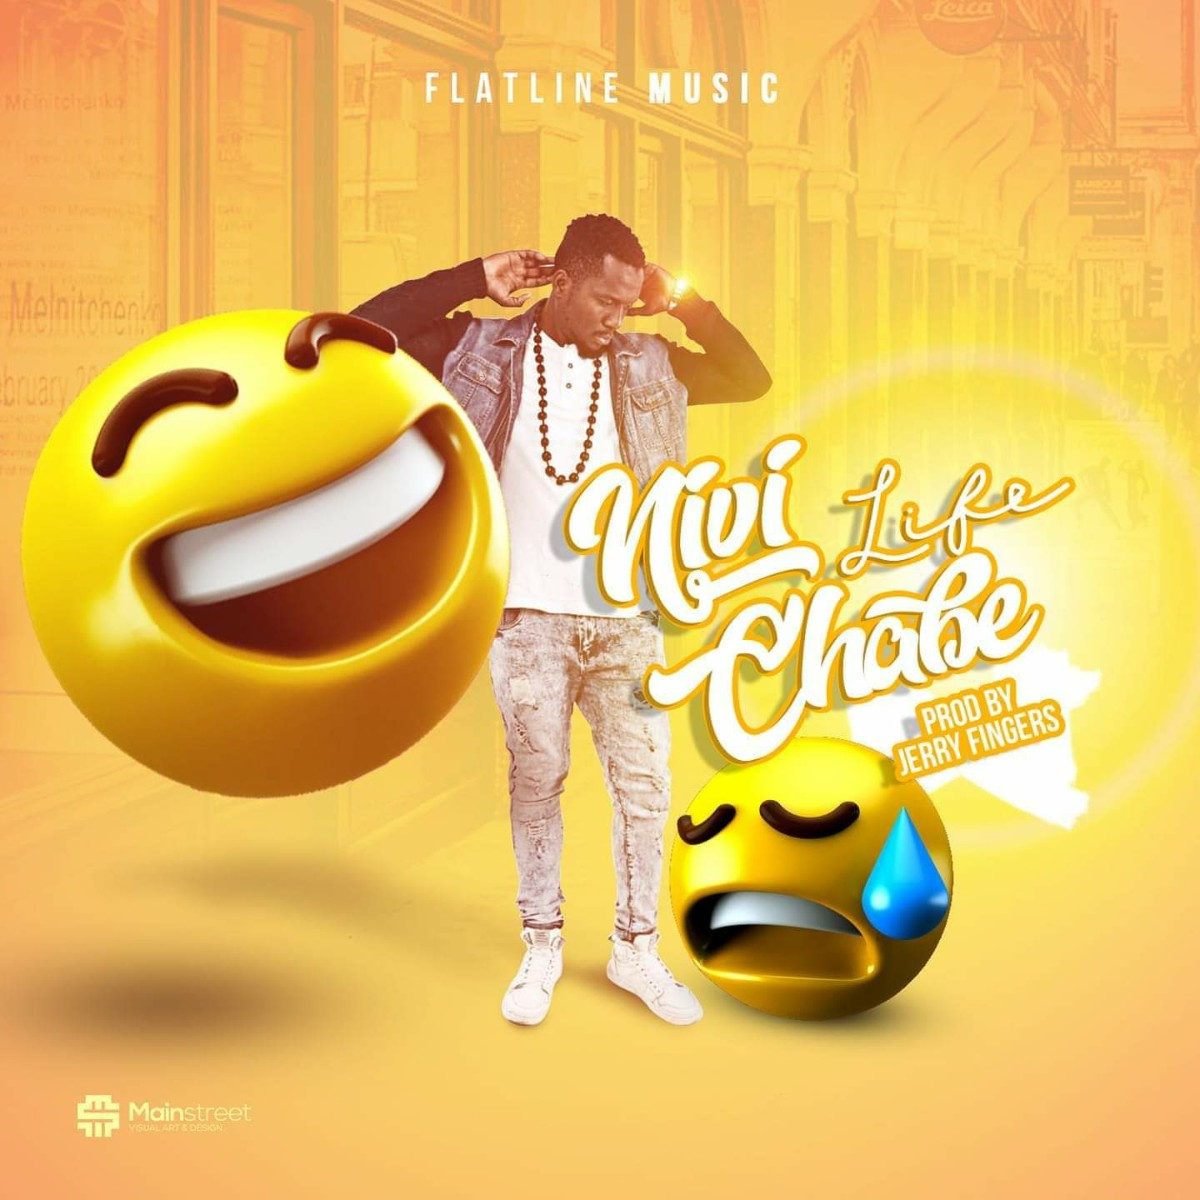 Ronnie - Nivi Life Chabe (Prod. Jerry Fingers)